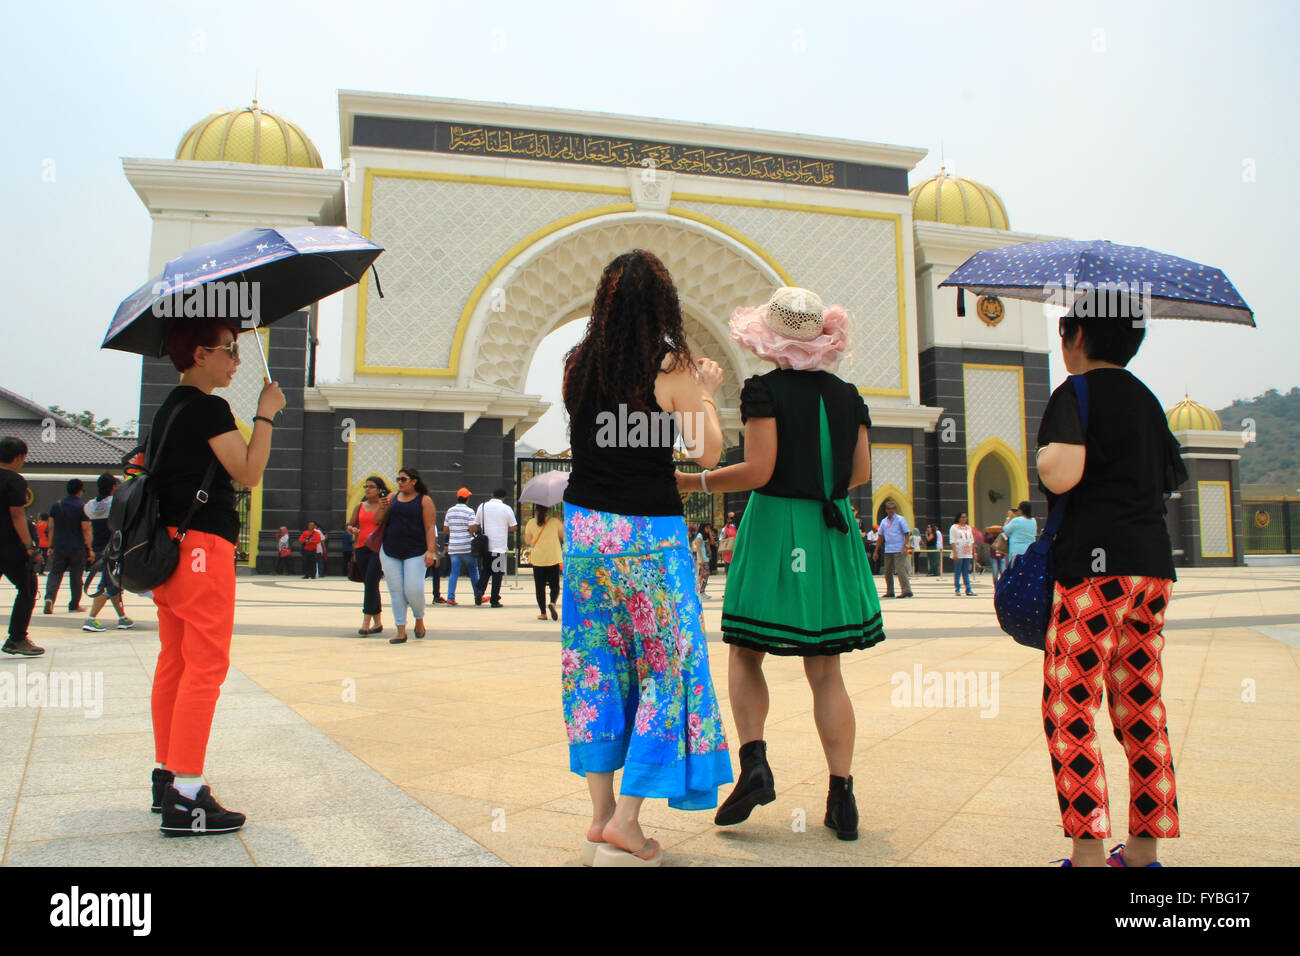 Kuala Lumpur, Malaysia. 23rd Apr, 2016. Malaysia national palace is one of the tourist destinations in Malaysia. - Stock Image